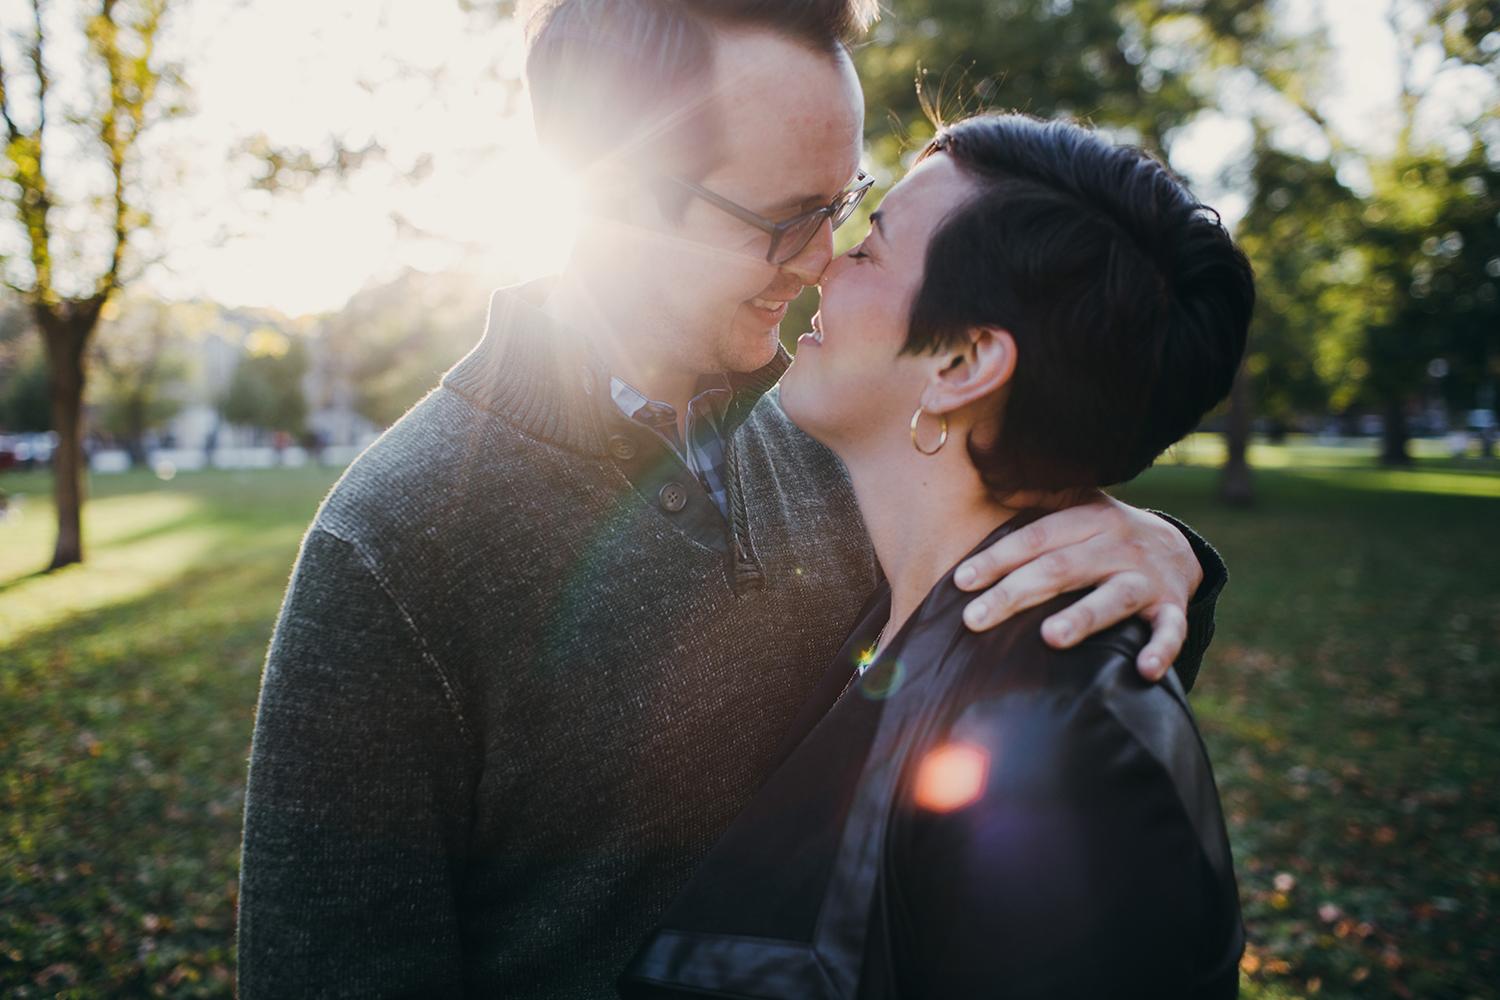 chicago_engagement_photos_logan_square_west_side_elearnor_mark (15 of 32).jpg